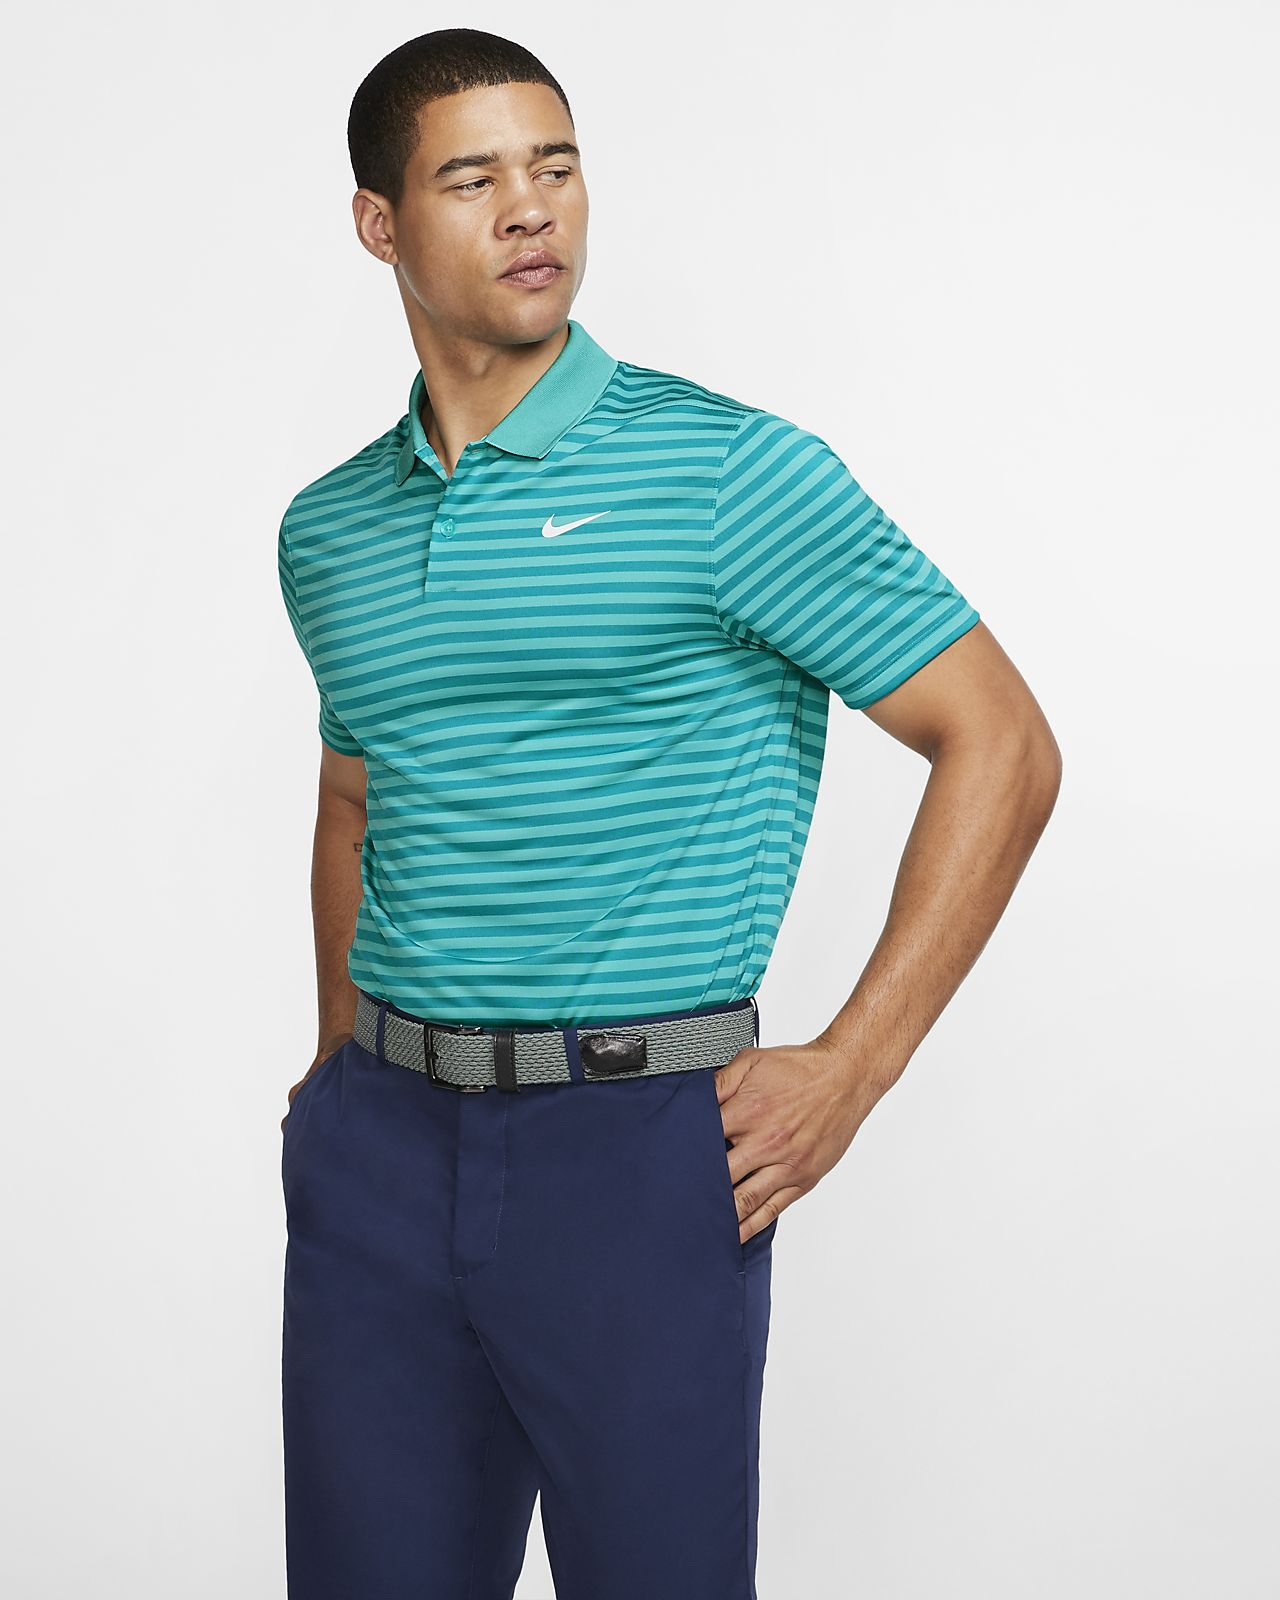 27366fd843ce9 Nike Dri-FIT Victory Men's Striped Golf Polo. Nike.com